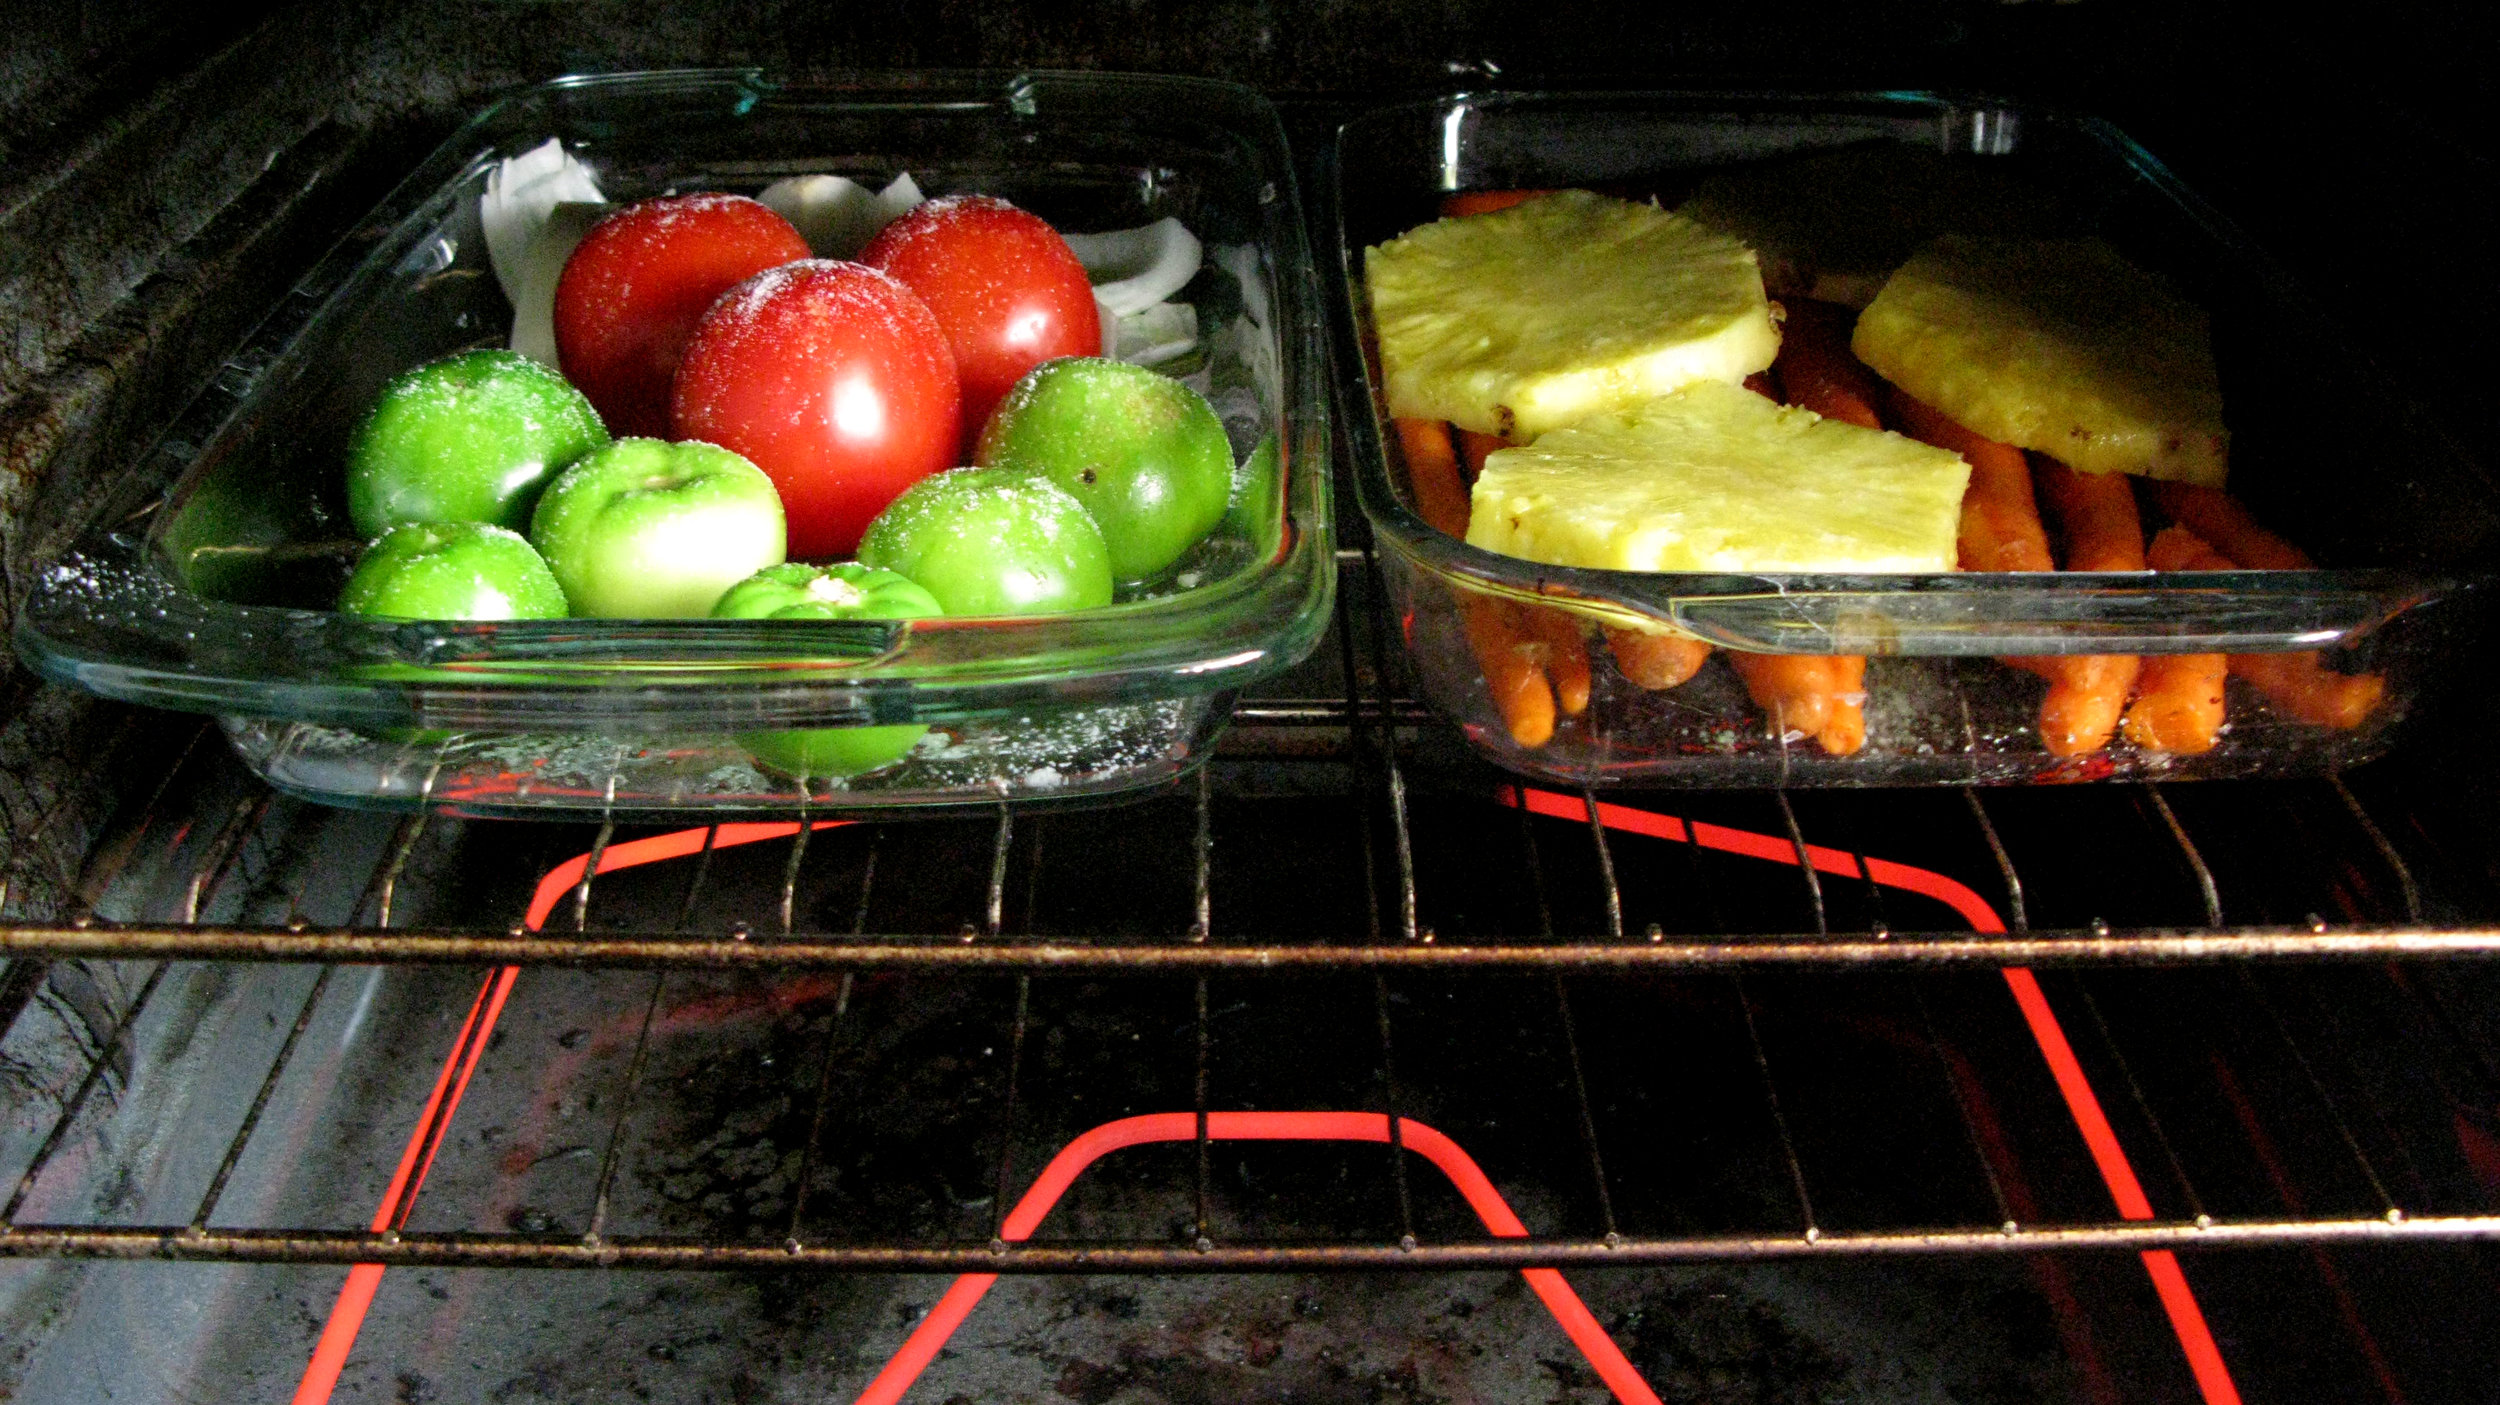 Tomatillos, tomatoes, onions, garlic, EVOO + salt on left; pineapples sitting on carrots on right; roasted at high temps until caramelized + sizzling.